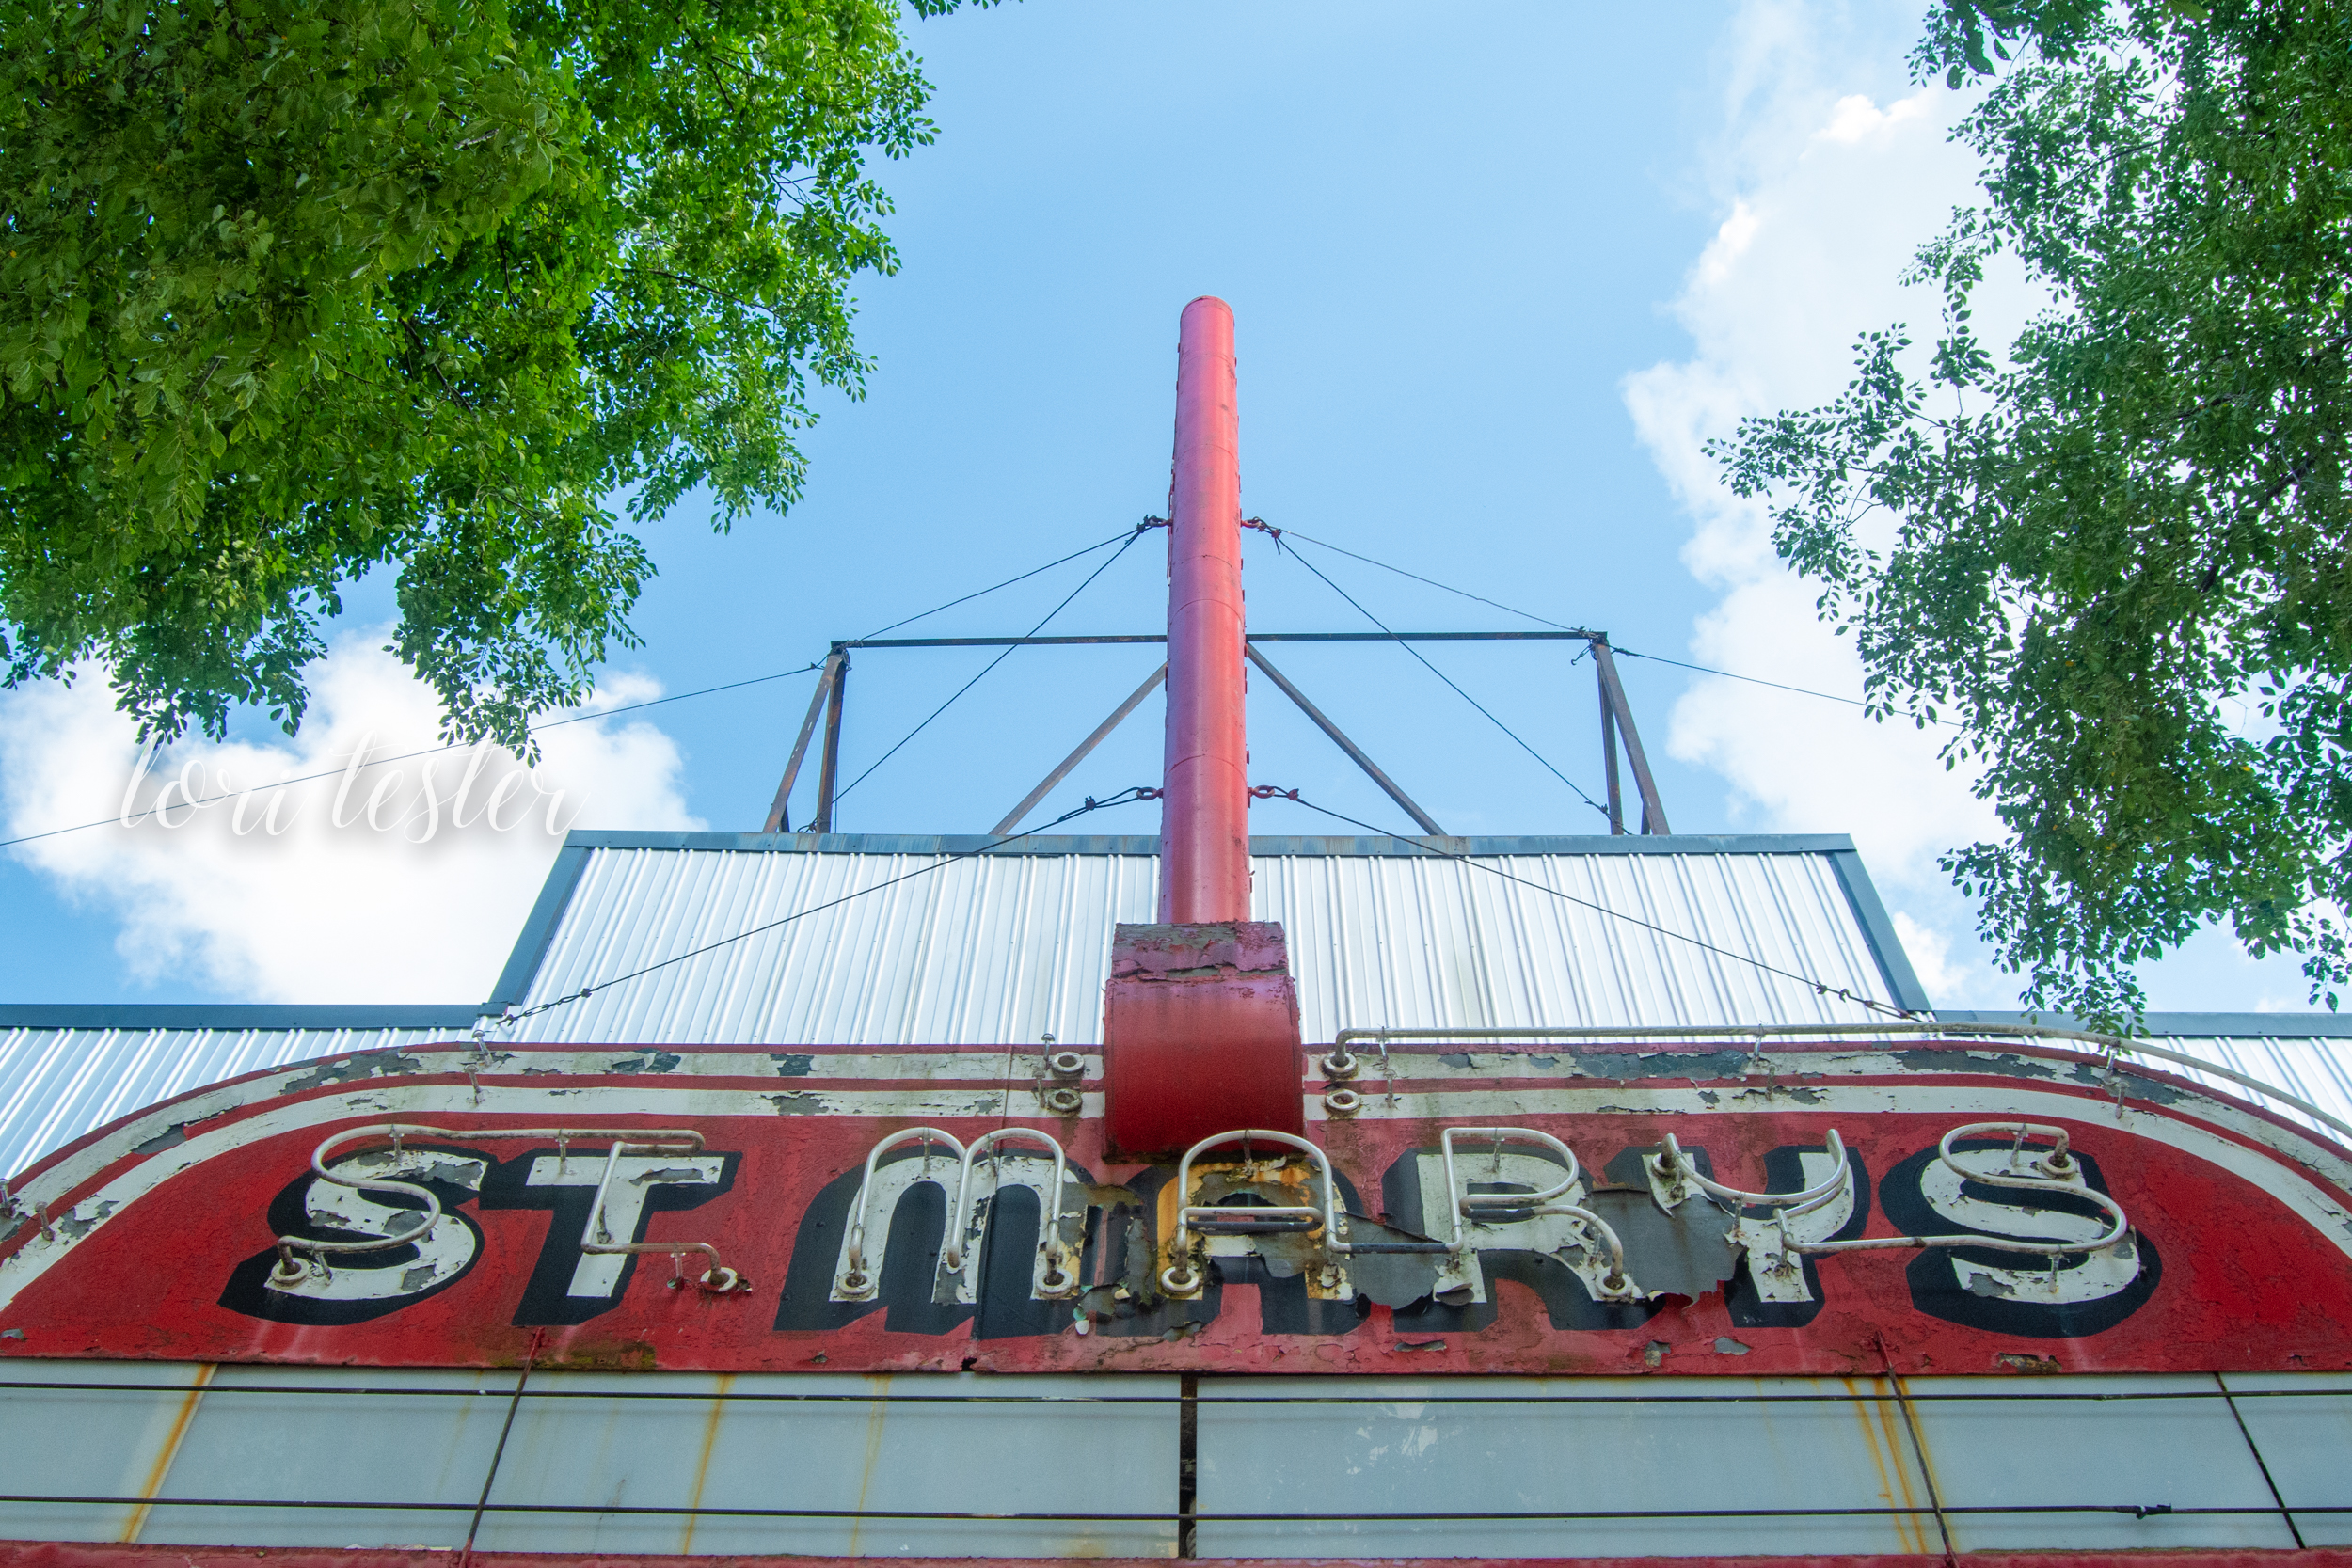 St. Marys Theatre Marquee